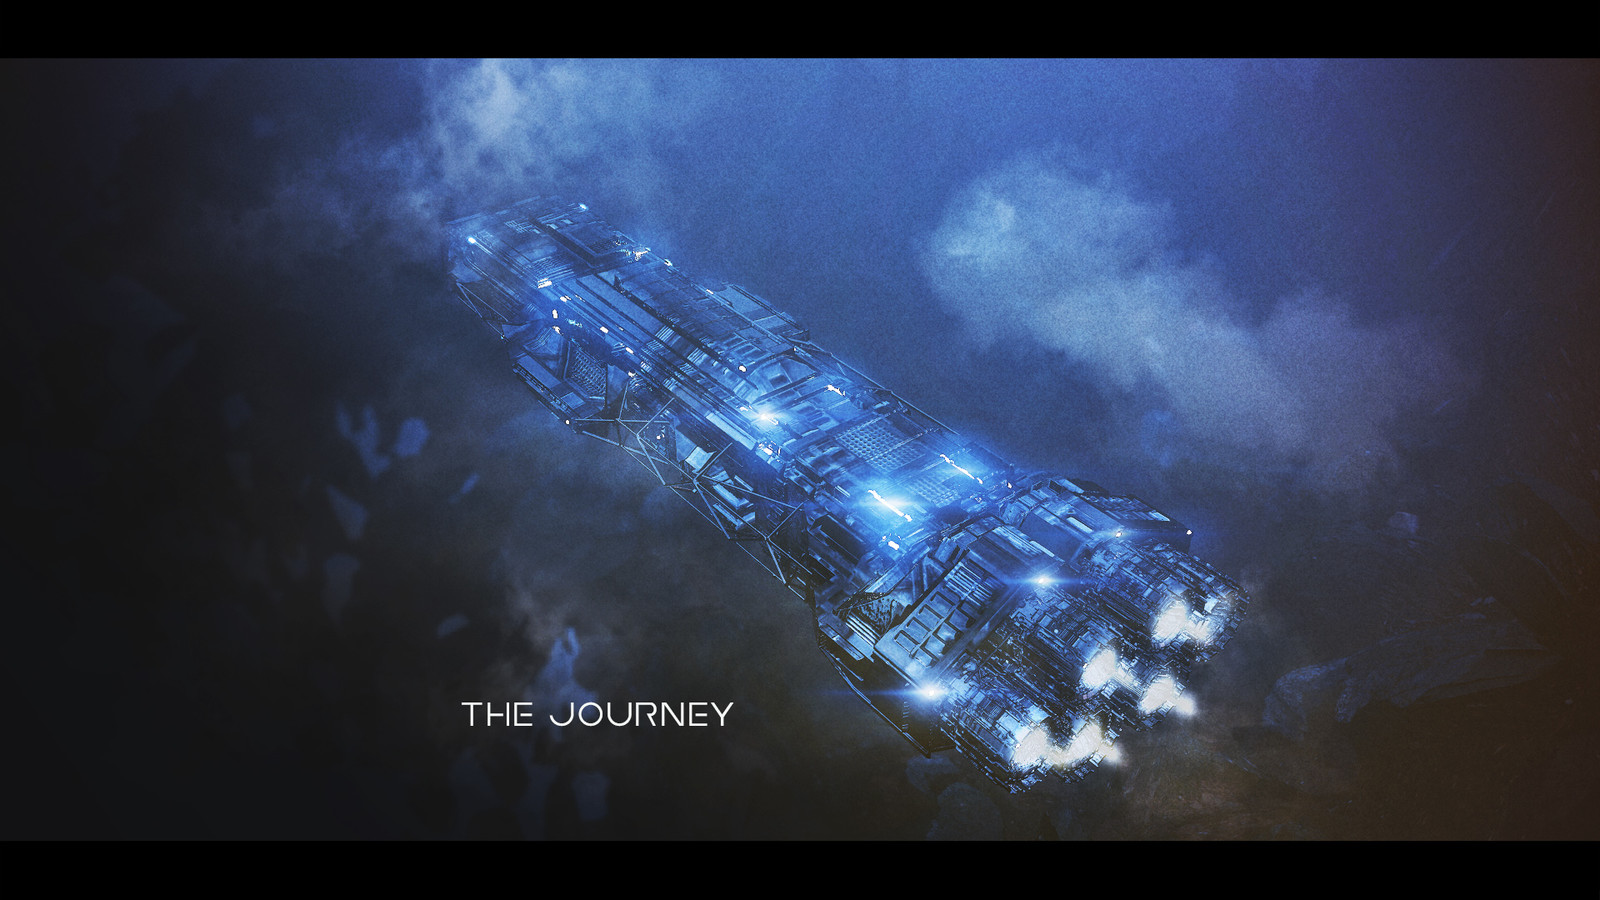 The Journey Concept